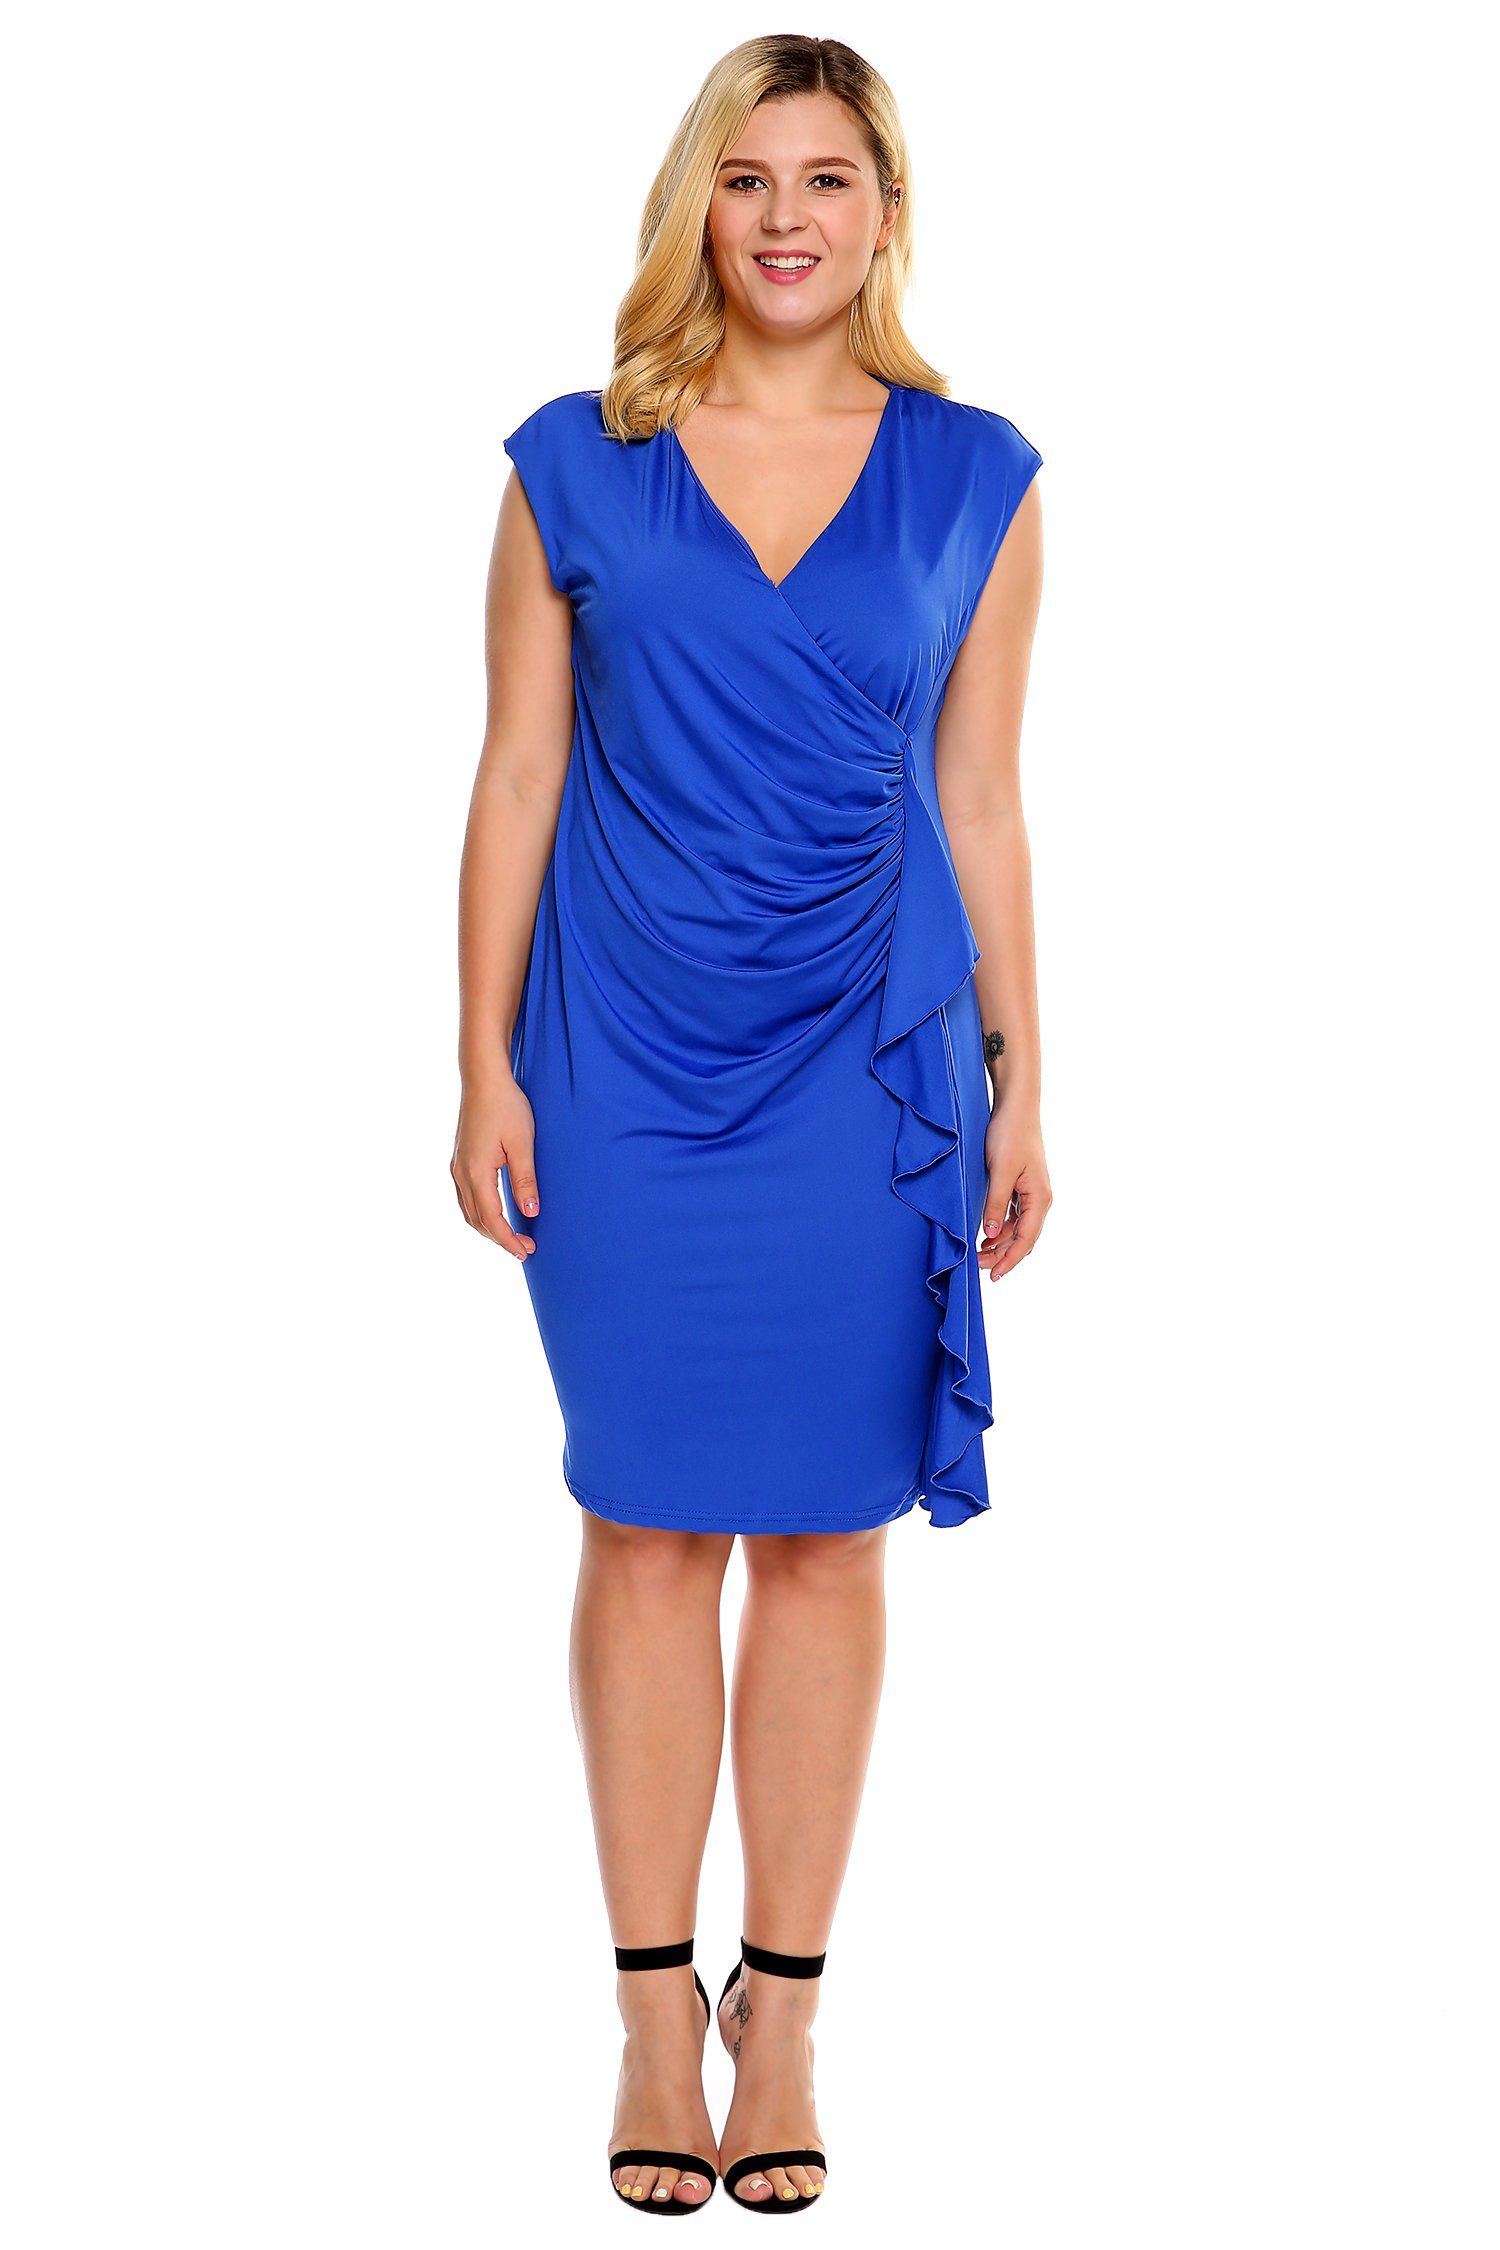 IN'VOLAND Women Plus Size Side Ruched Wrap Ruffle Dress